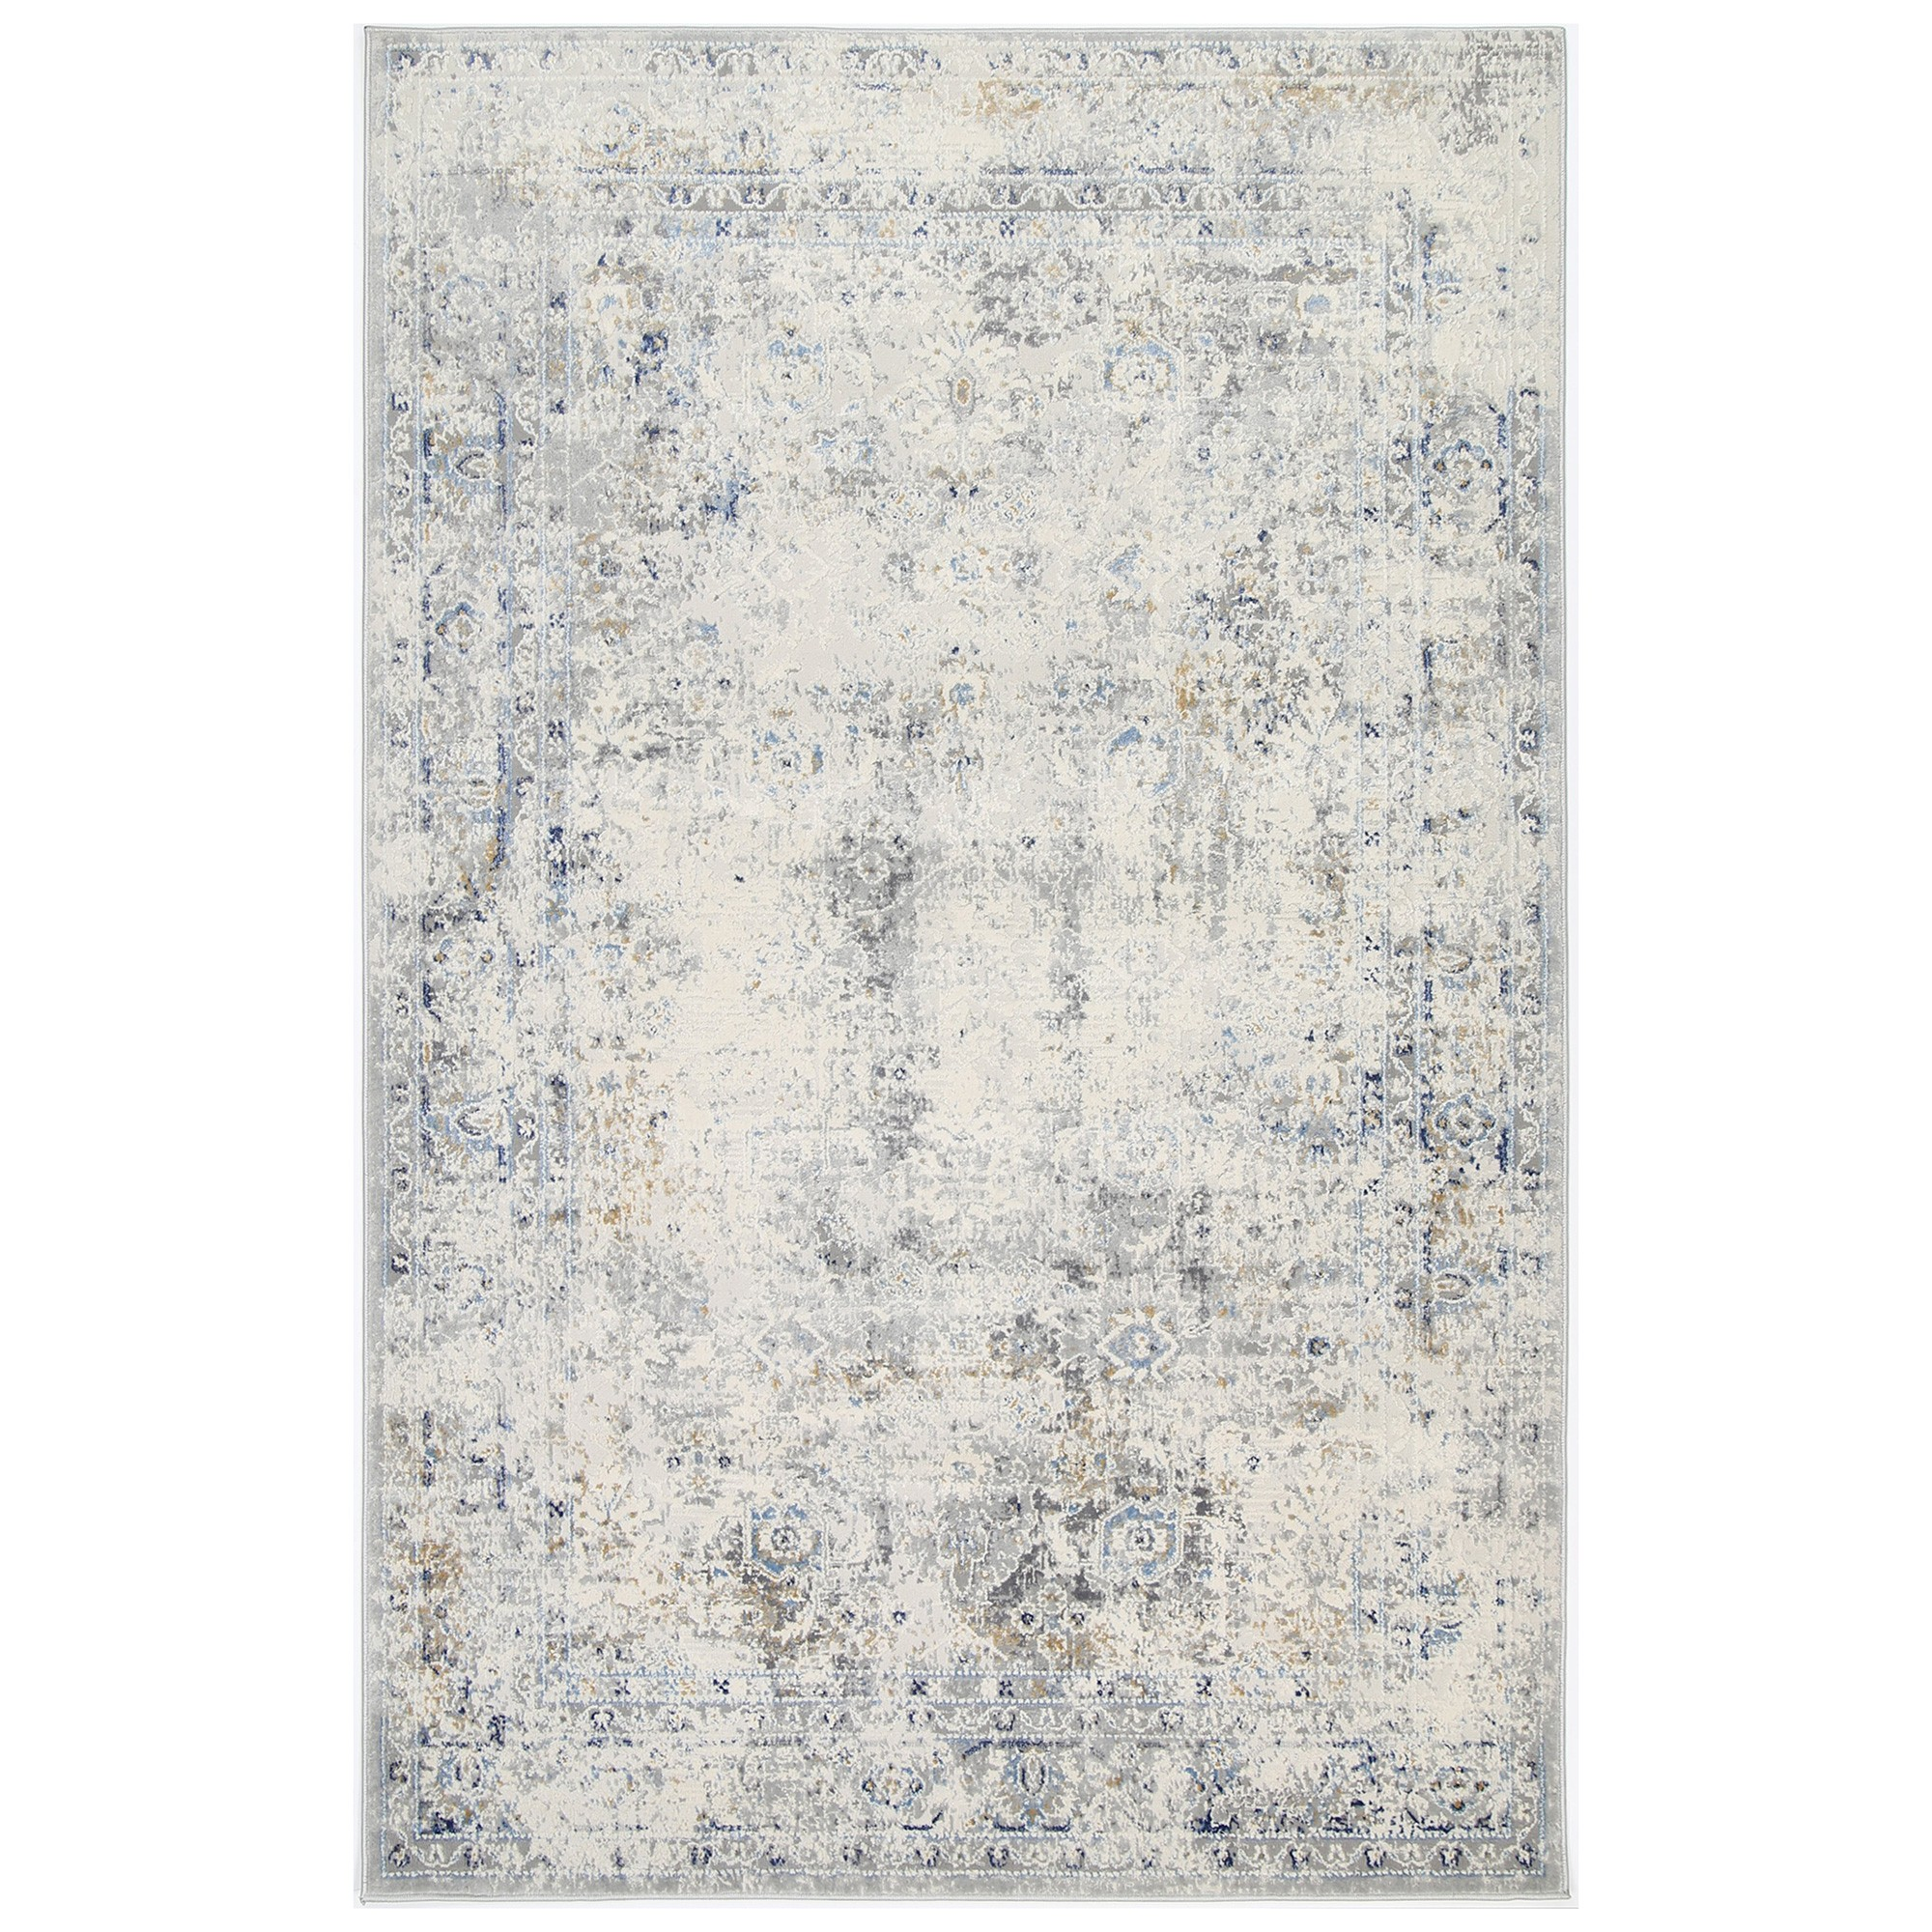 Expressions No.07 Transitional Rug, 400x300cm, Beige / Blue